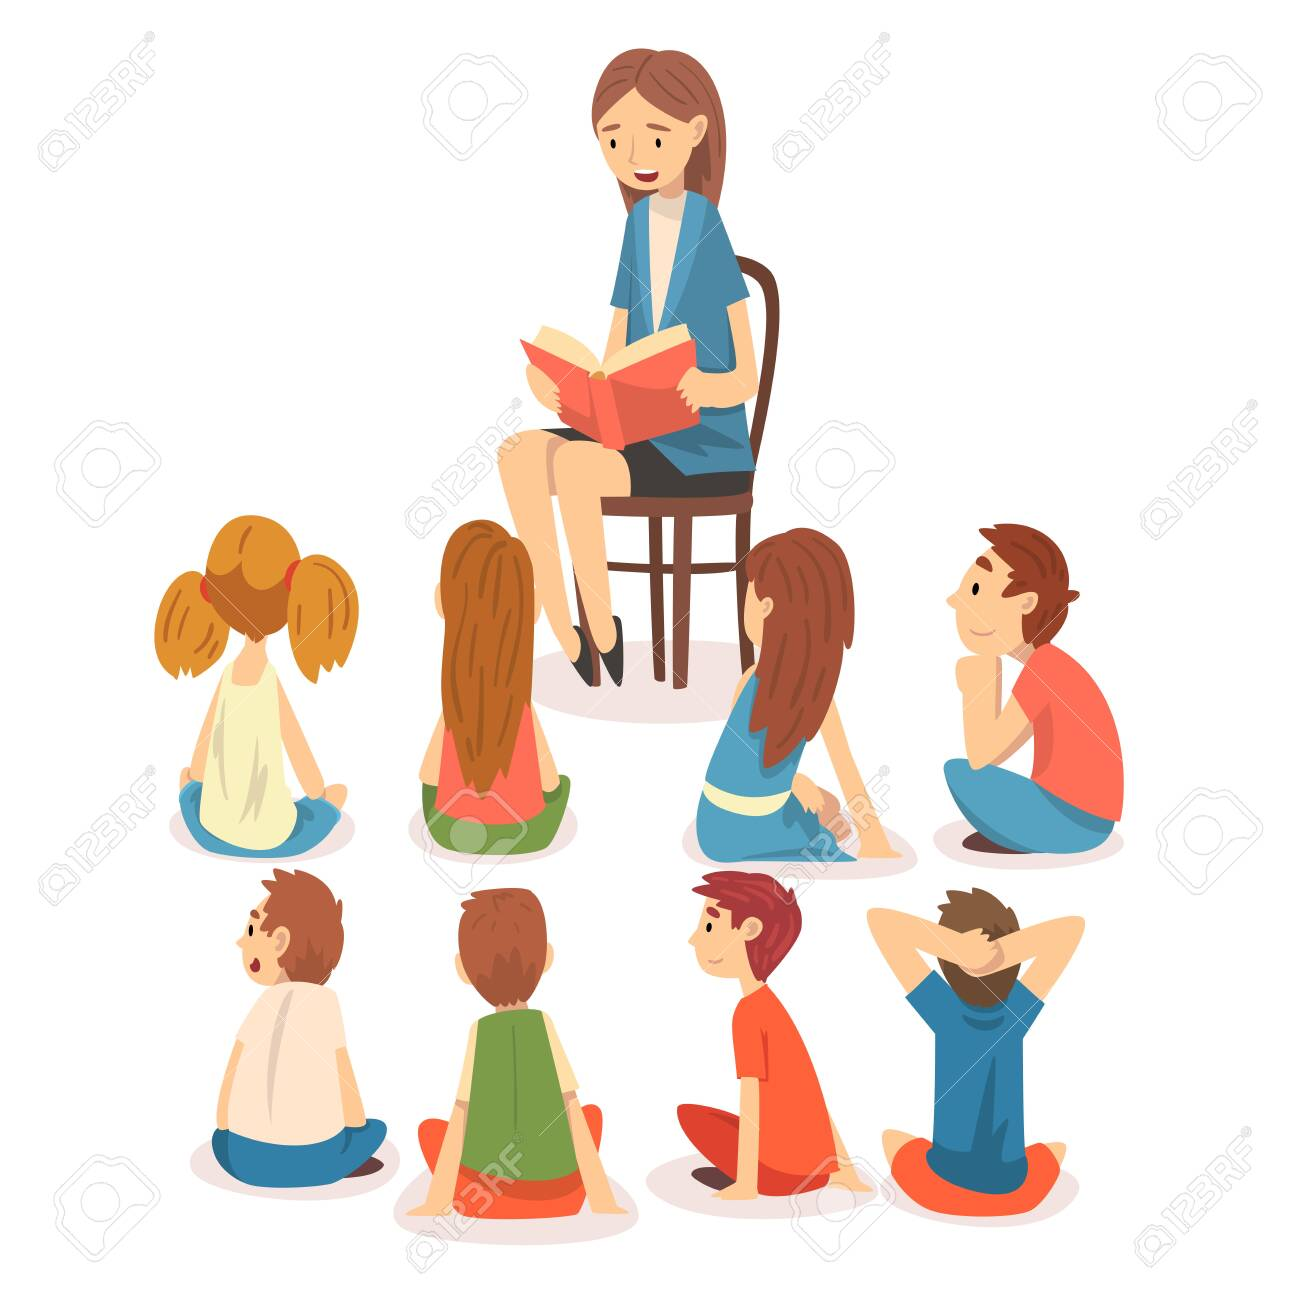 Group of Preschool Kids Sitting on Floor and Listening Teacher Who Reading a Book Vector Illustration on White Background. - 128164614